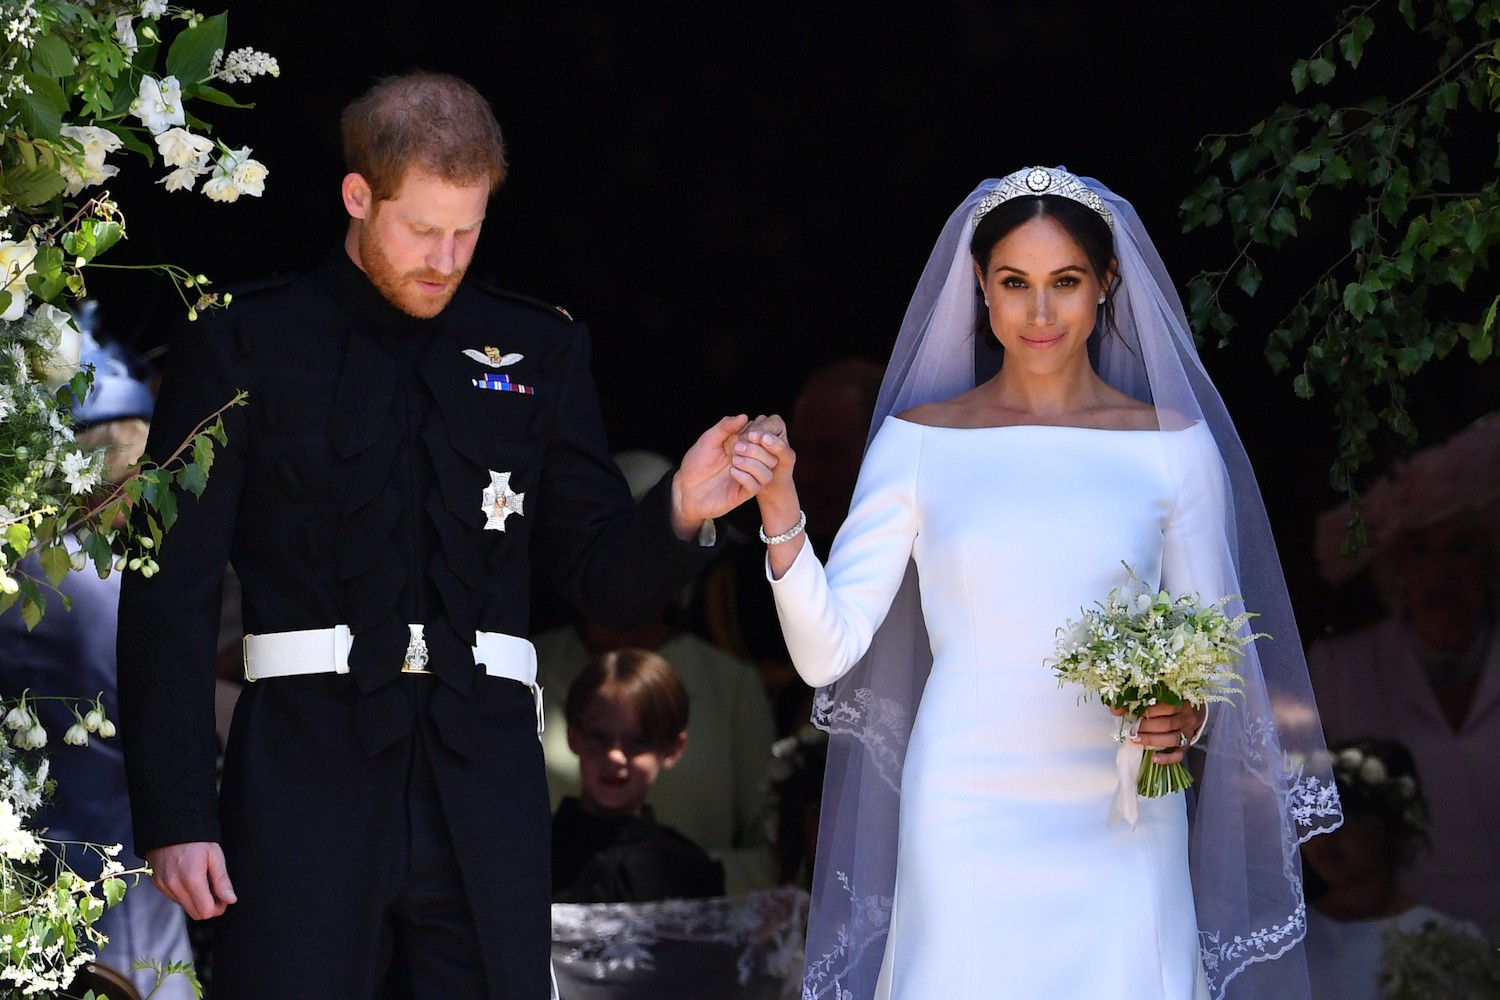 Britain's Prince Harry, Duke of Sussex and his wife Meghan, Duchess of Sussex leave from the West Door of St George's Chapel, Windsor Castle, in Windsor on May 19, 2018 in Windsor, England.